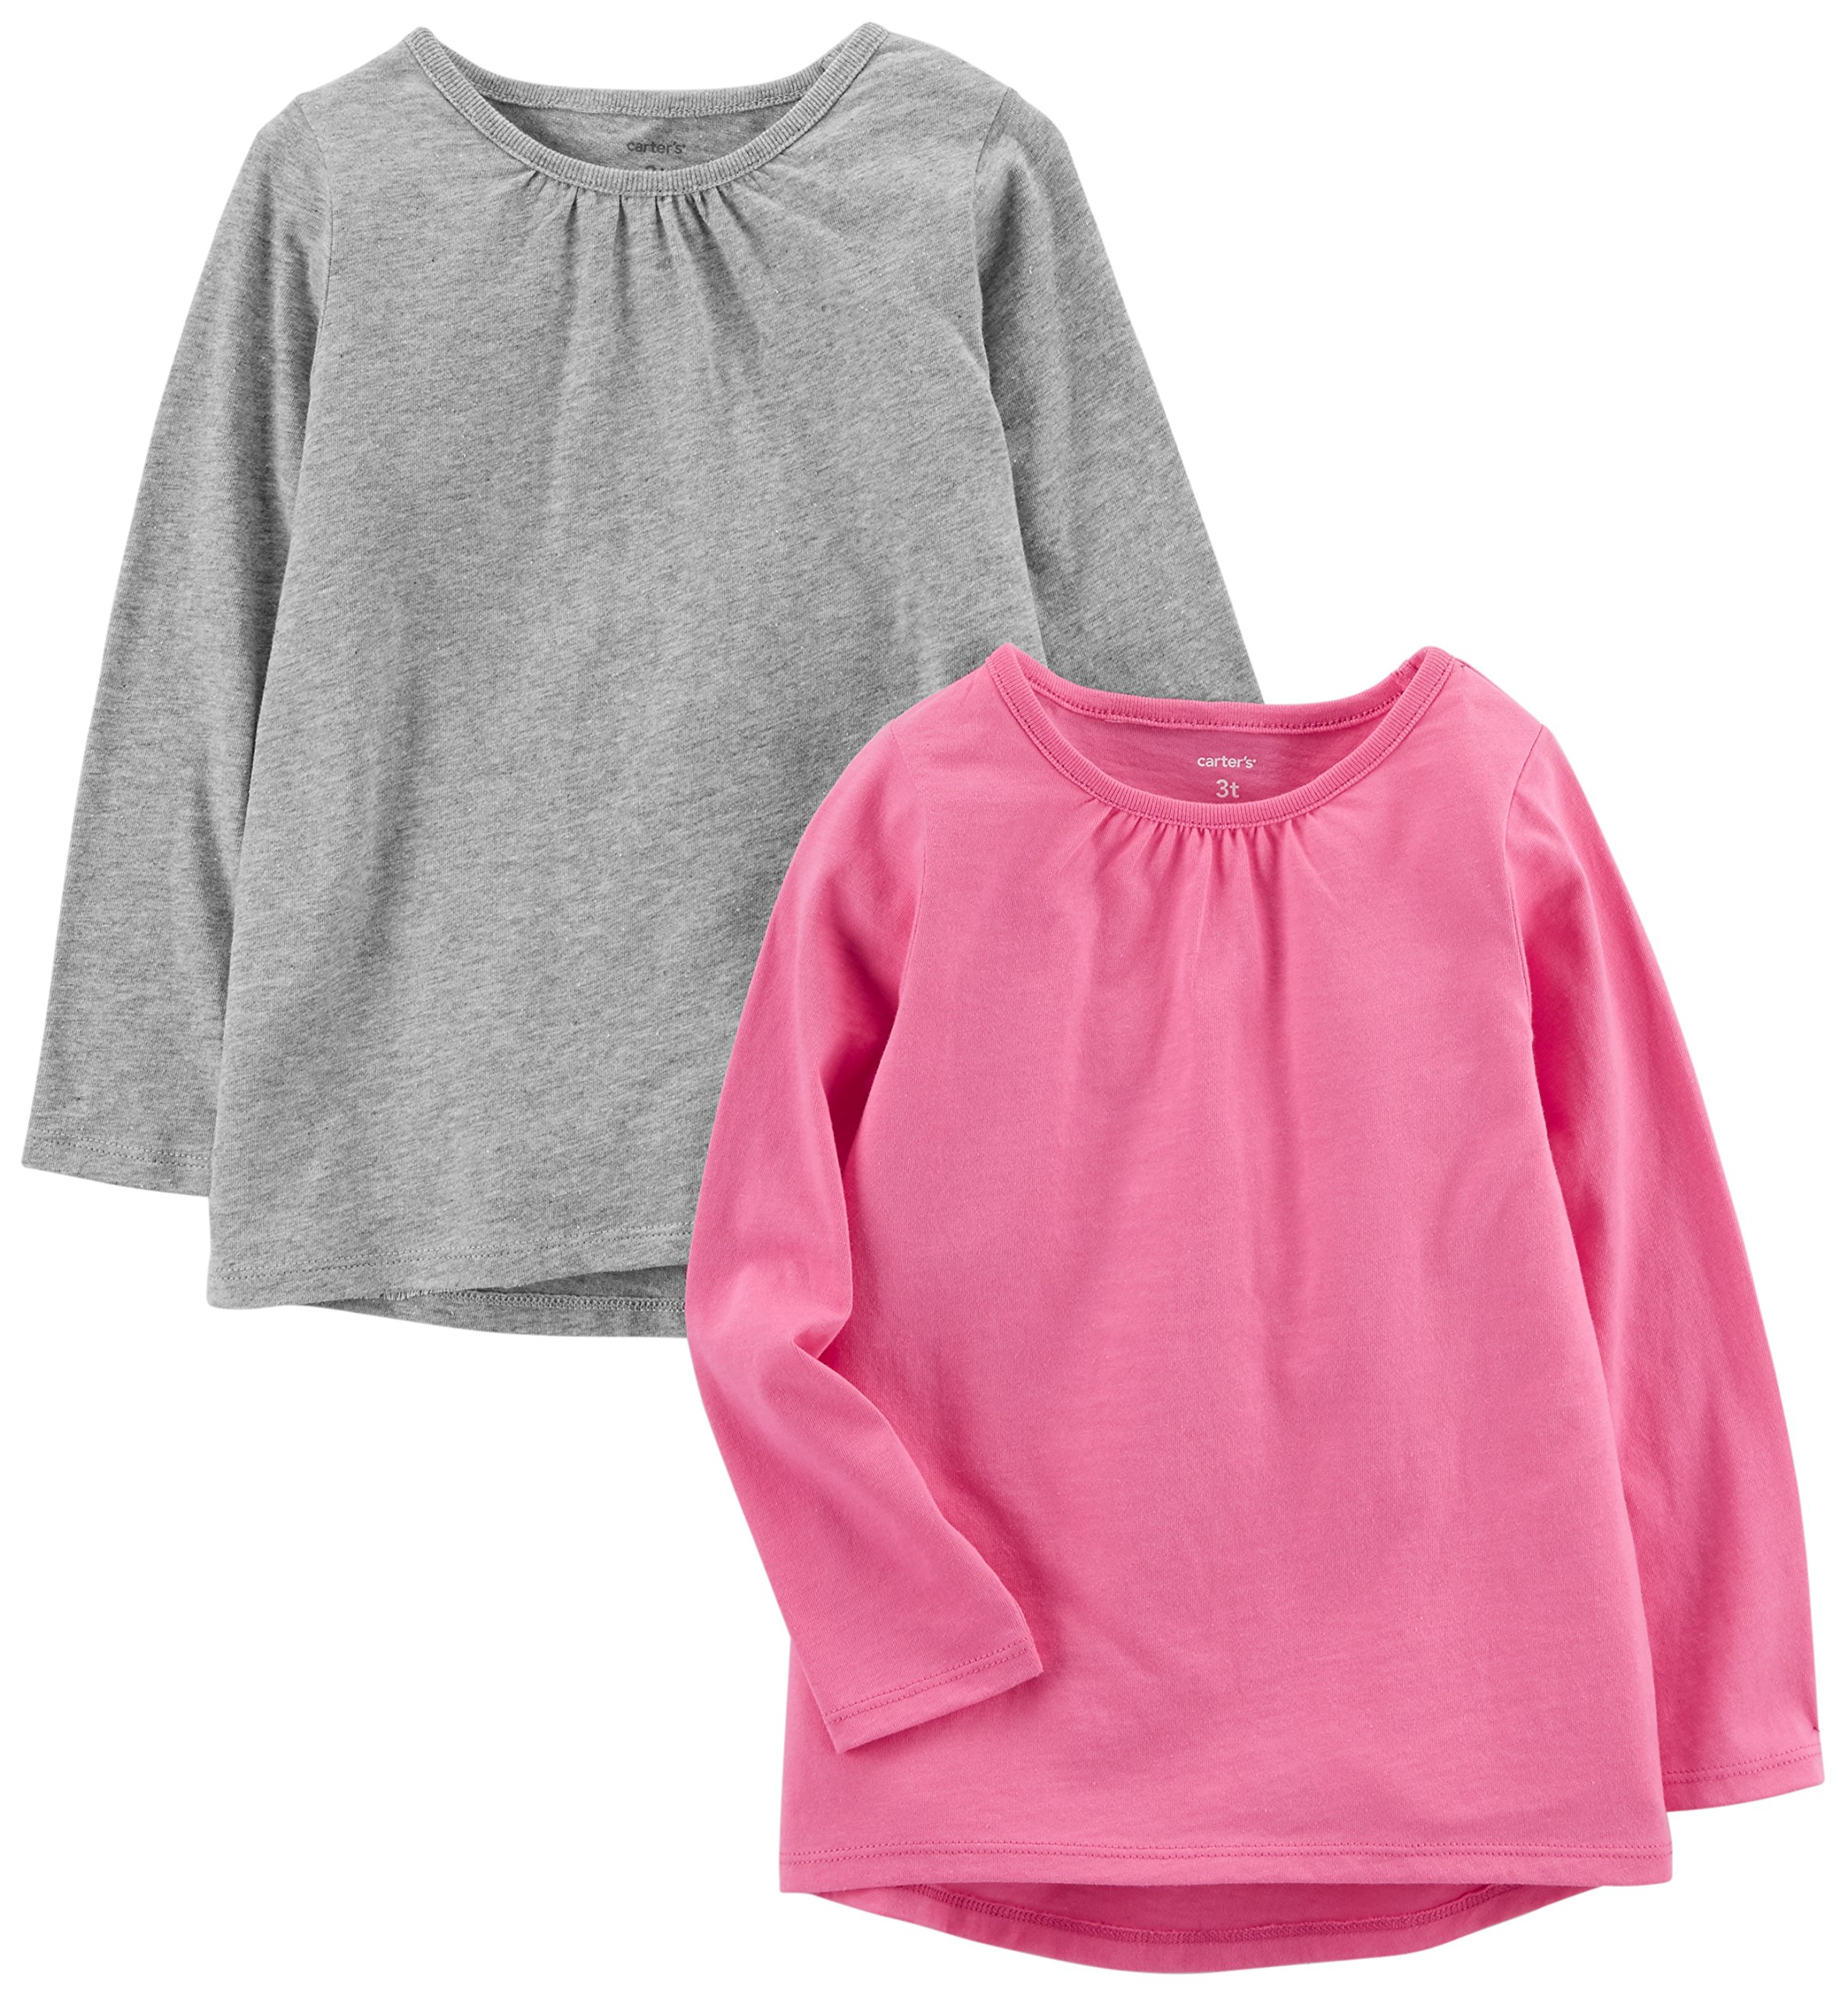 Carter's Girls' Toddler 2-Pack Long-Sleeve Tee, Grey/Bright Pink, 4T